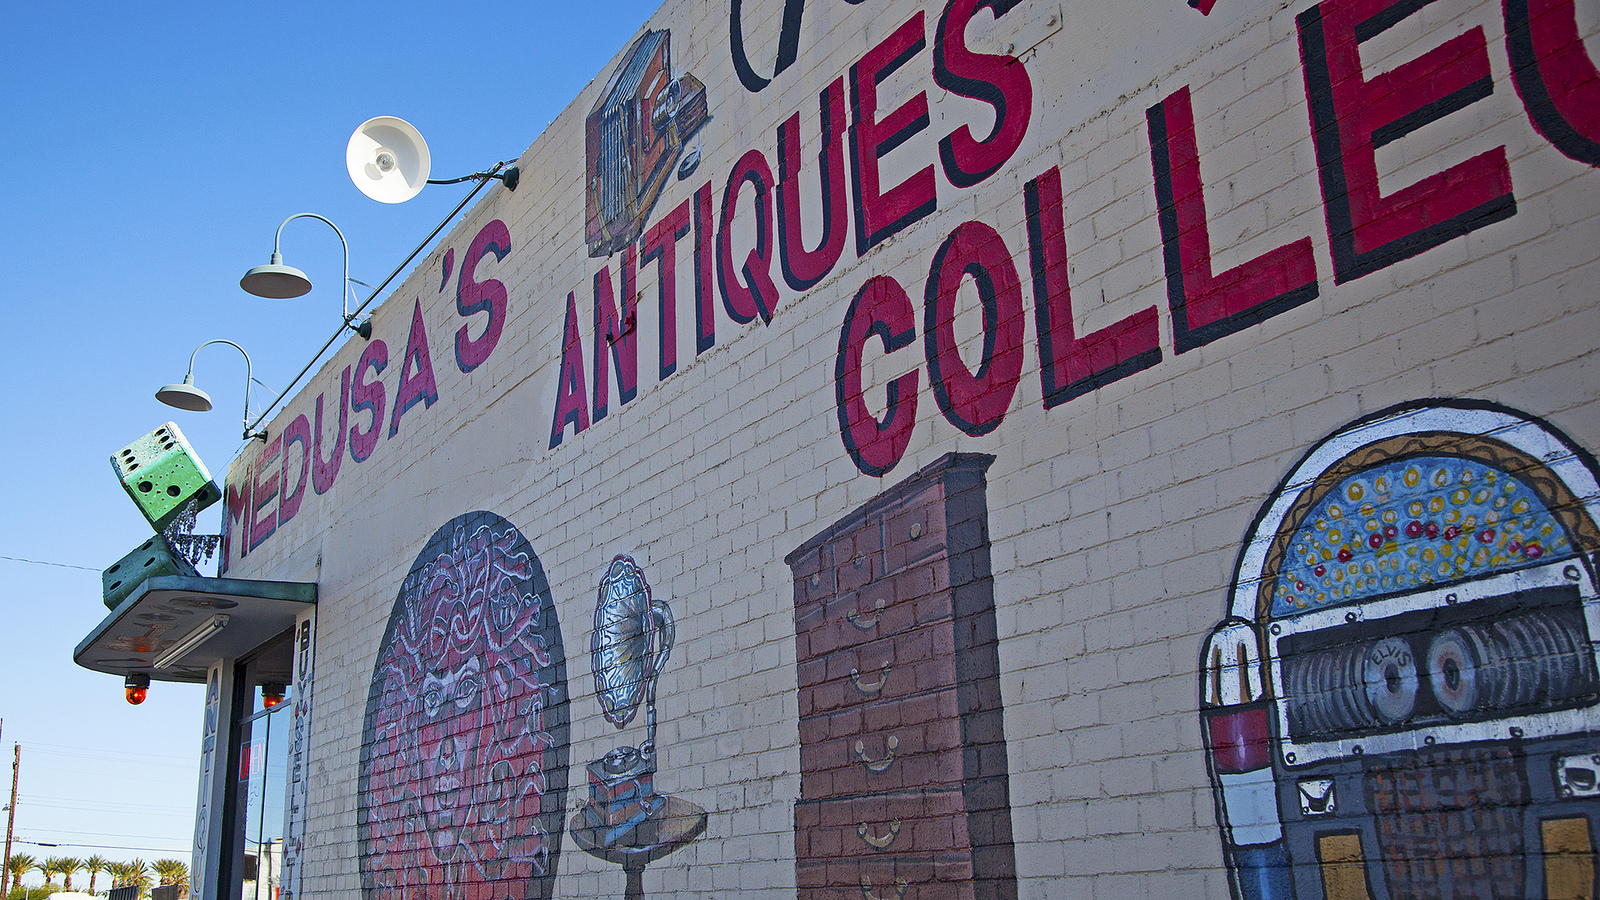 """Medusa's Antiques"" by Travel Nevada is licensed under CC 2.0."